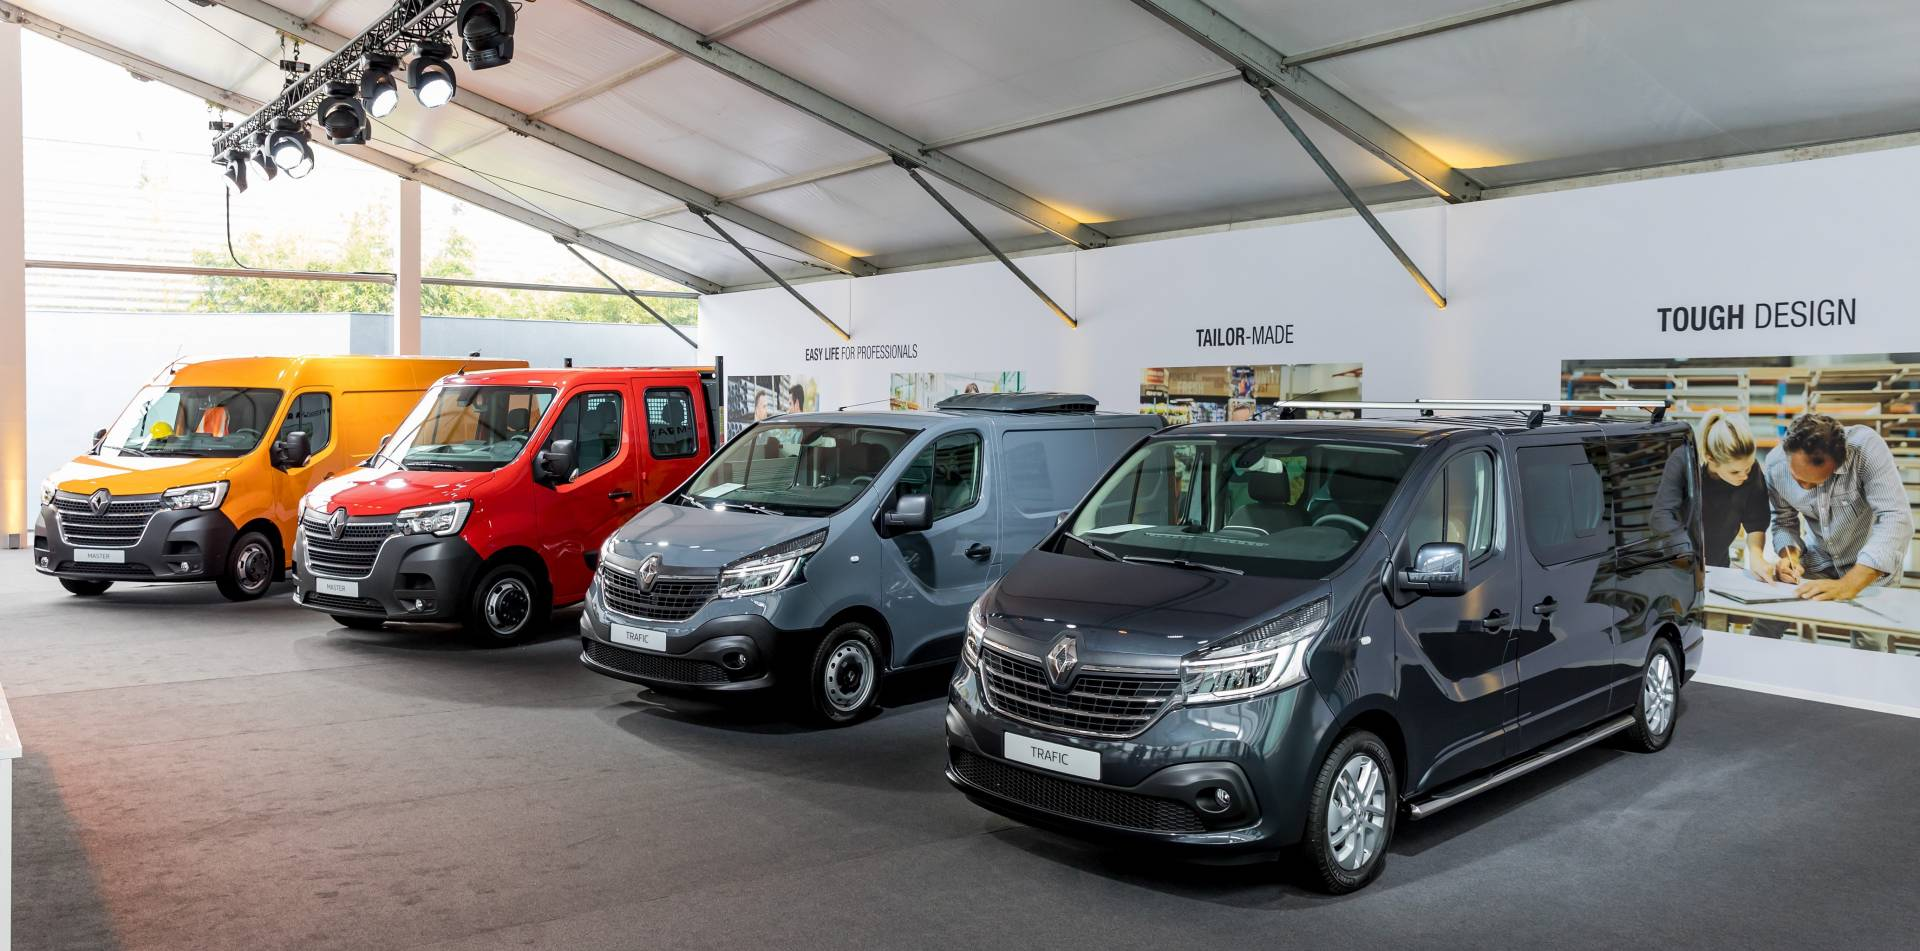 3ad72764-renault-commercial-vehicles-range-7